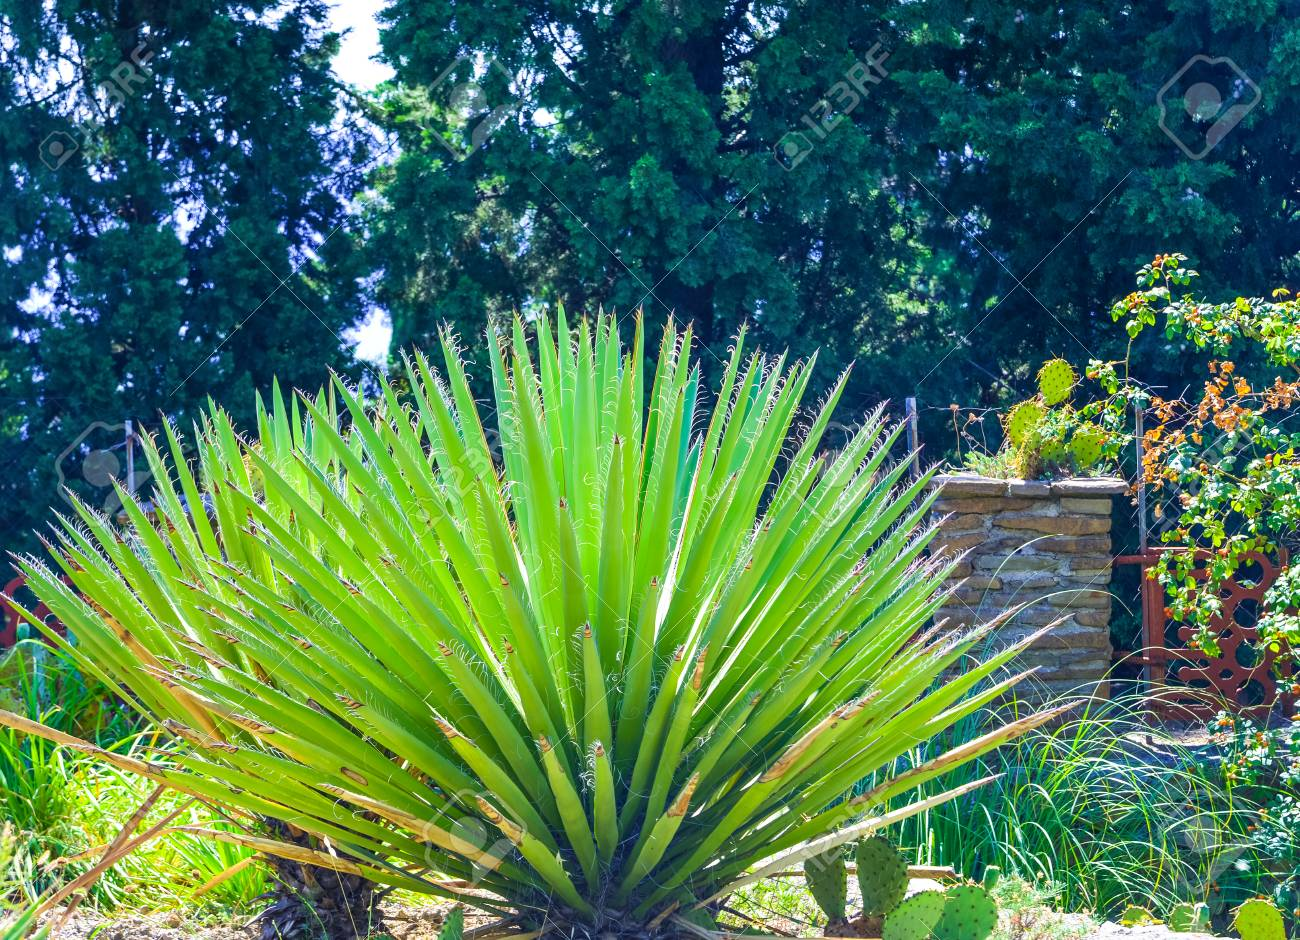 Exotic Green Cactus, Agave And Yucca Plants Grow In Flower Pots In A Garden.